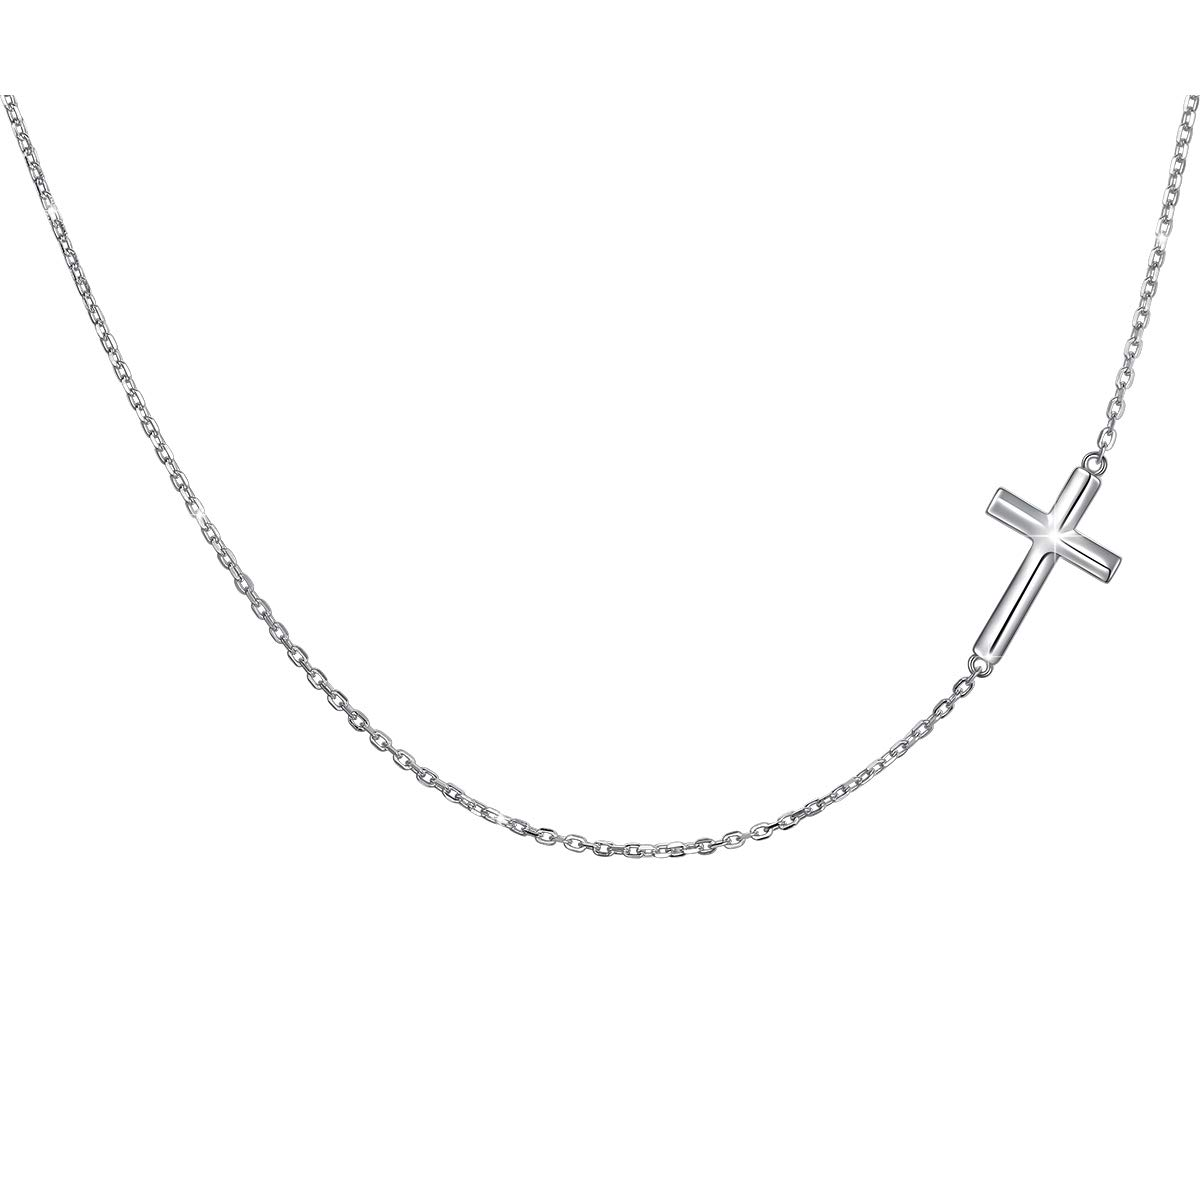 1ba2f9de40e0a1 S925 Sterling Silver Jewelry Sideways Cross Choker Necklace 14 inches to 18  inches product image